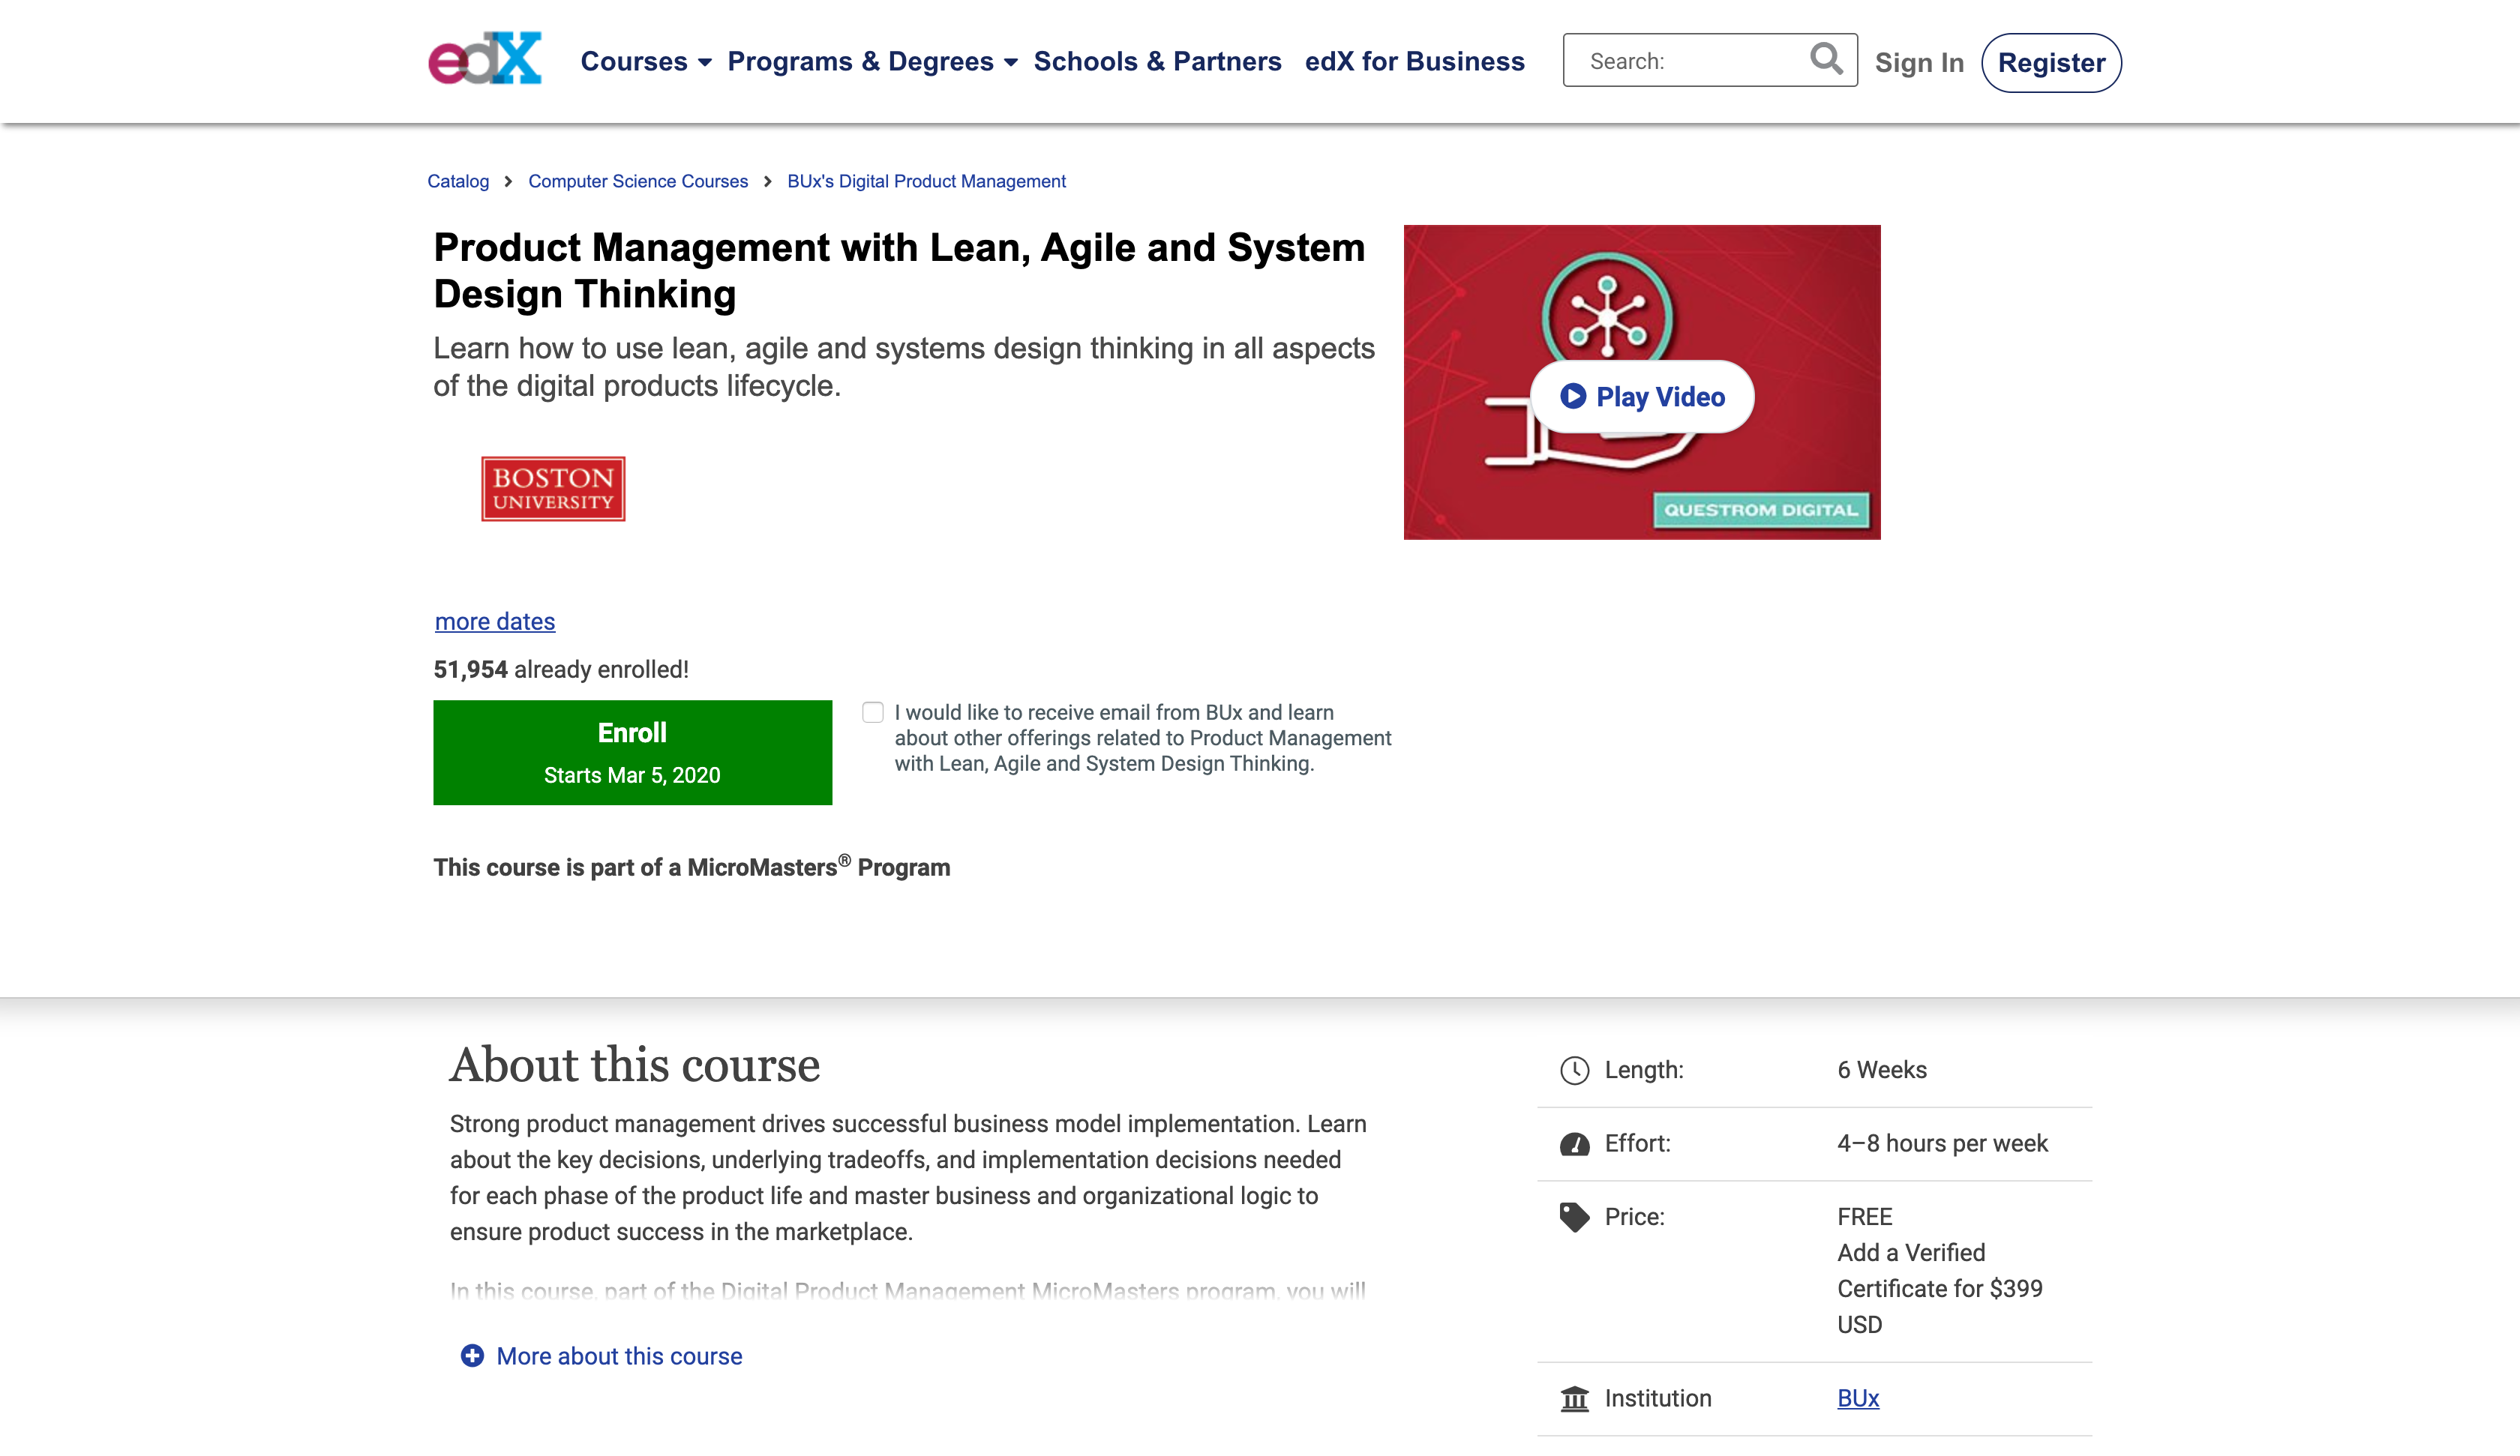 Product Management Certification with Lean, Agile and System Design Thinking (edX)